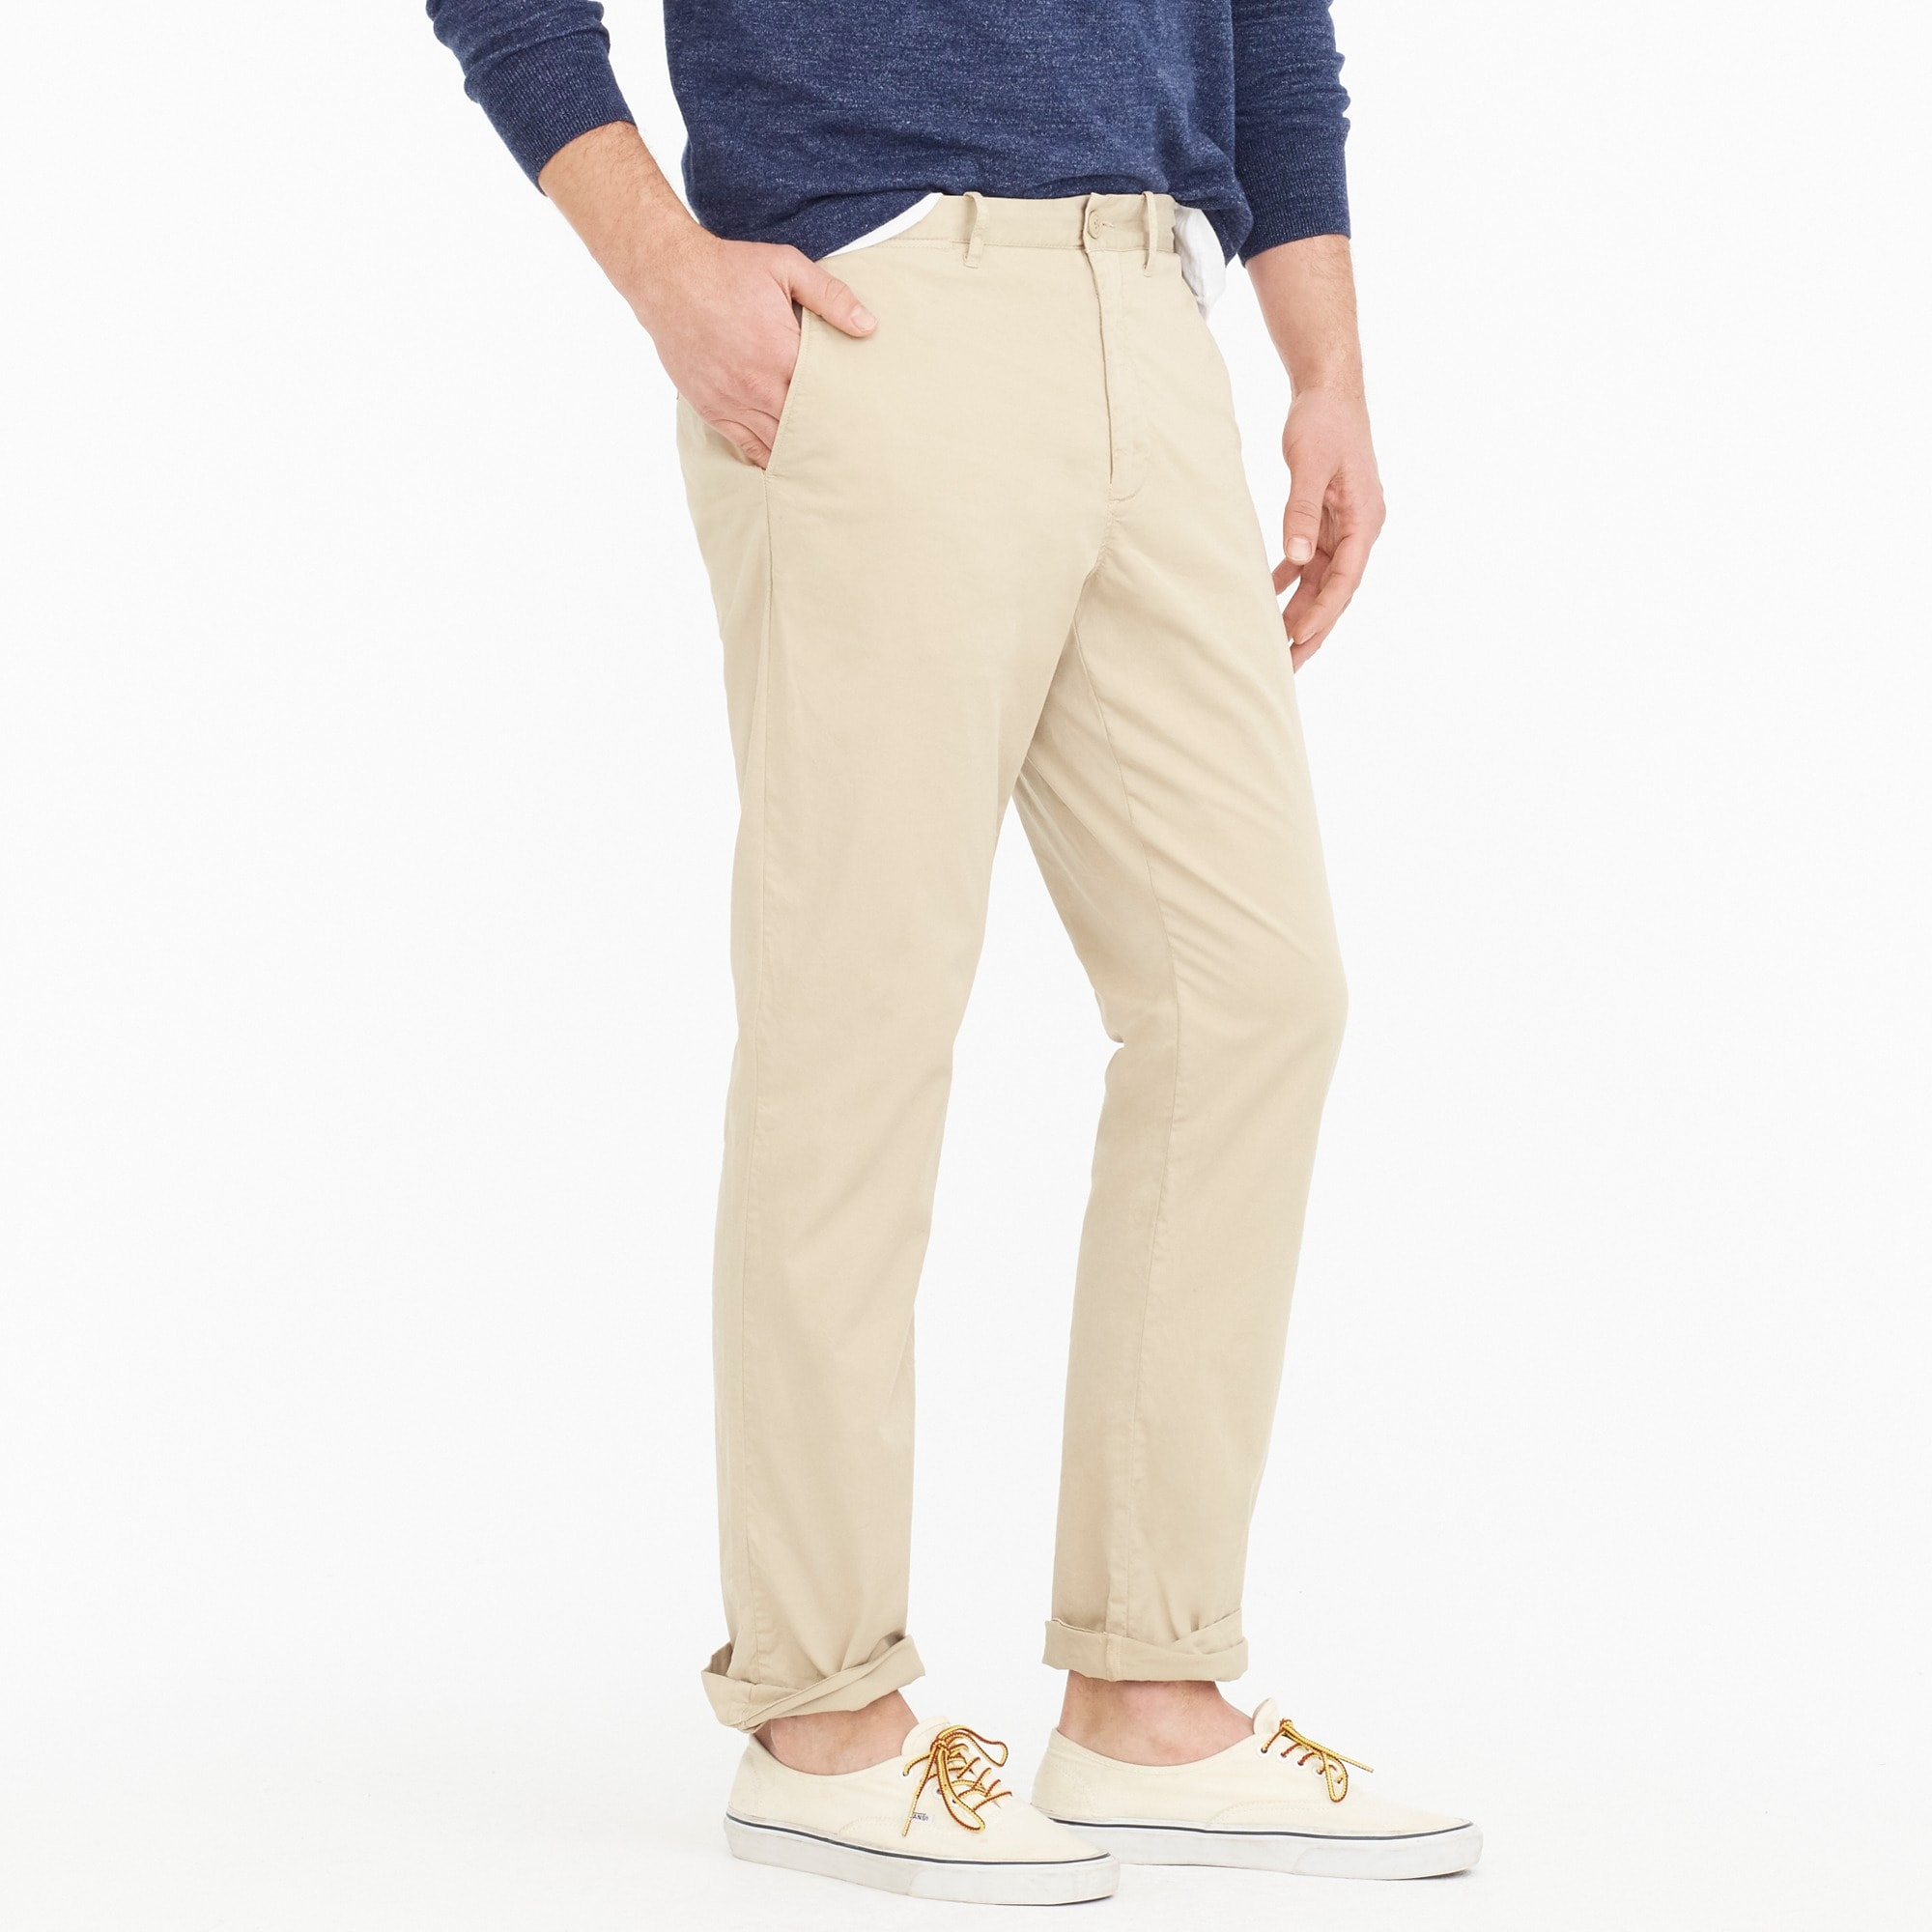 1040 Athletic-fit lightweight garment-dyed stretch chino